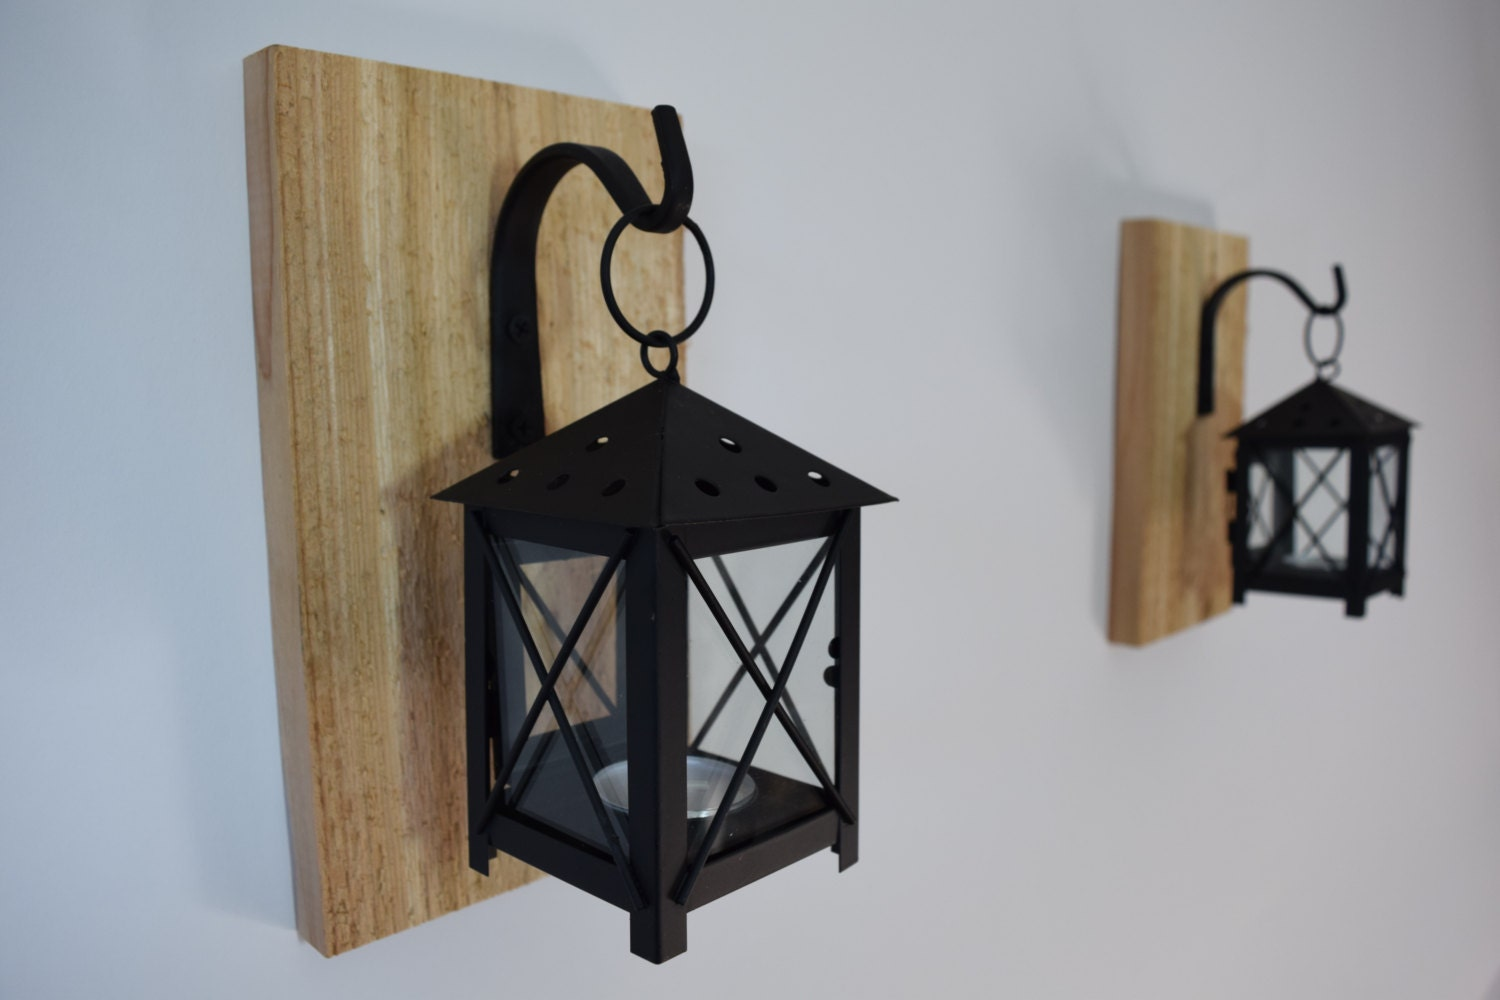 Rustic Wall Sconces For Candles : Rustic Candle Lantern Sconces Wall Decor Wall Sconce